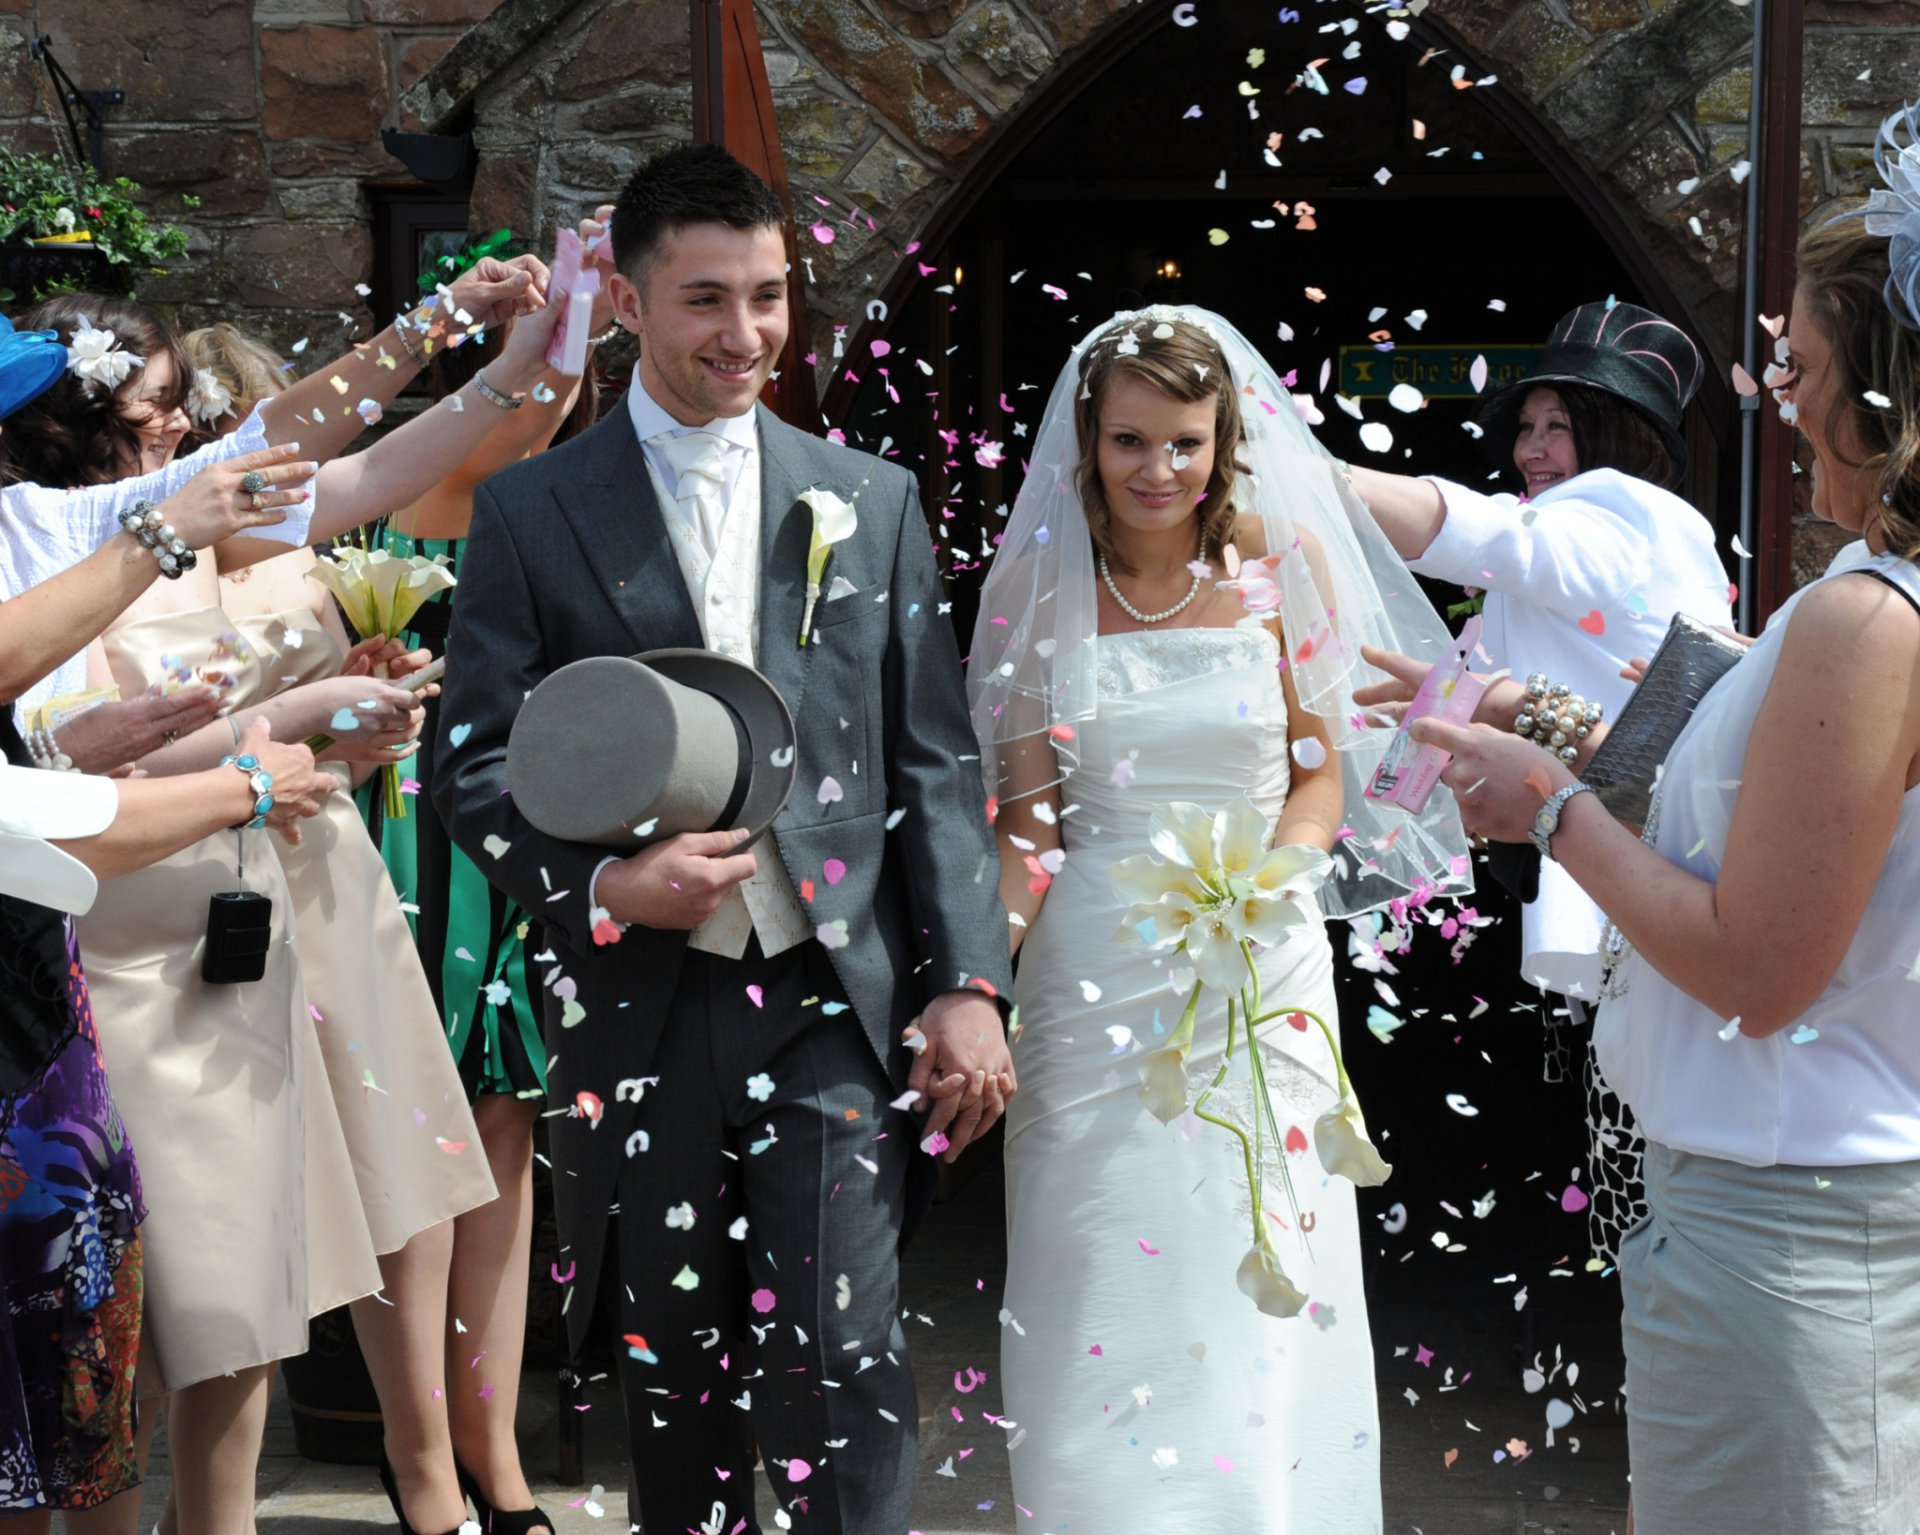 Weddings & Packages from The Mill Forge Hotel near Gretna Green